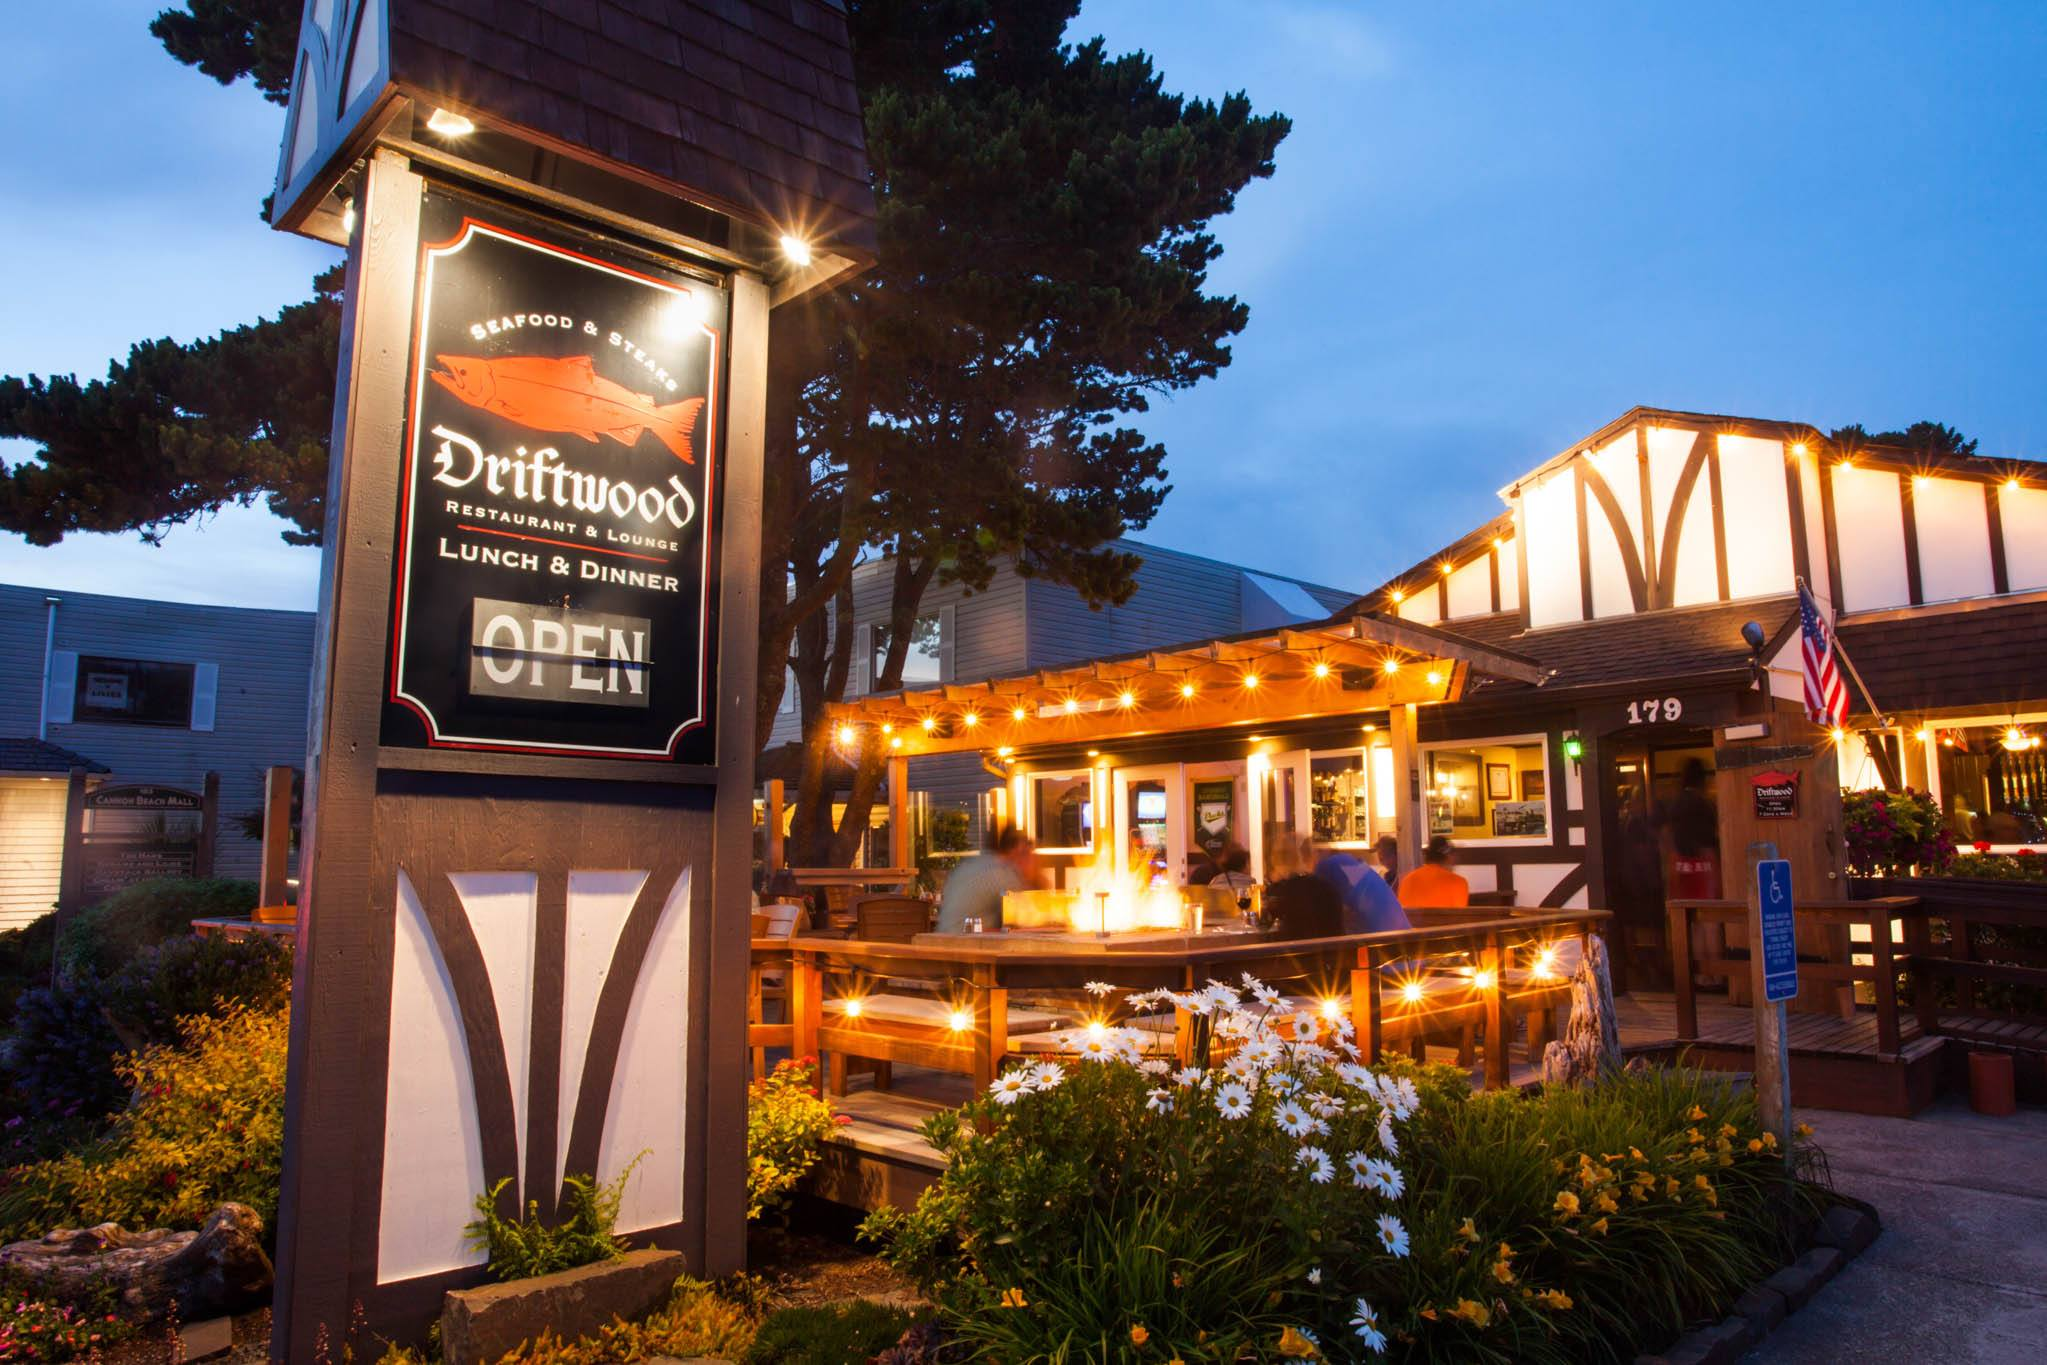 Driftwood restaurant at night